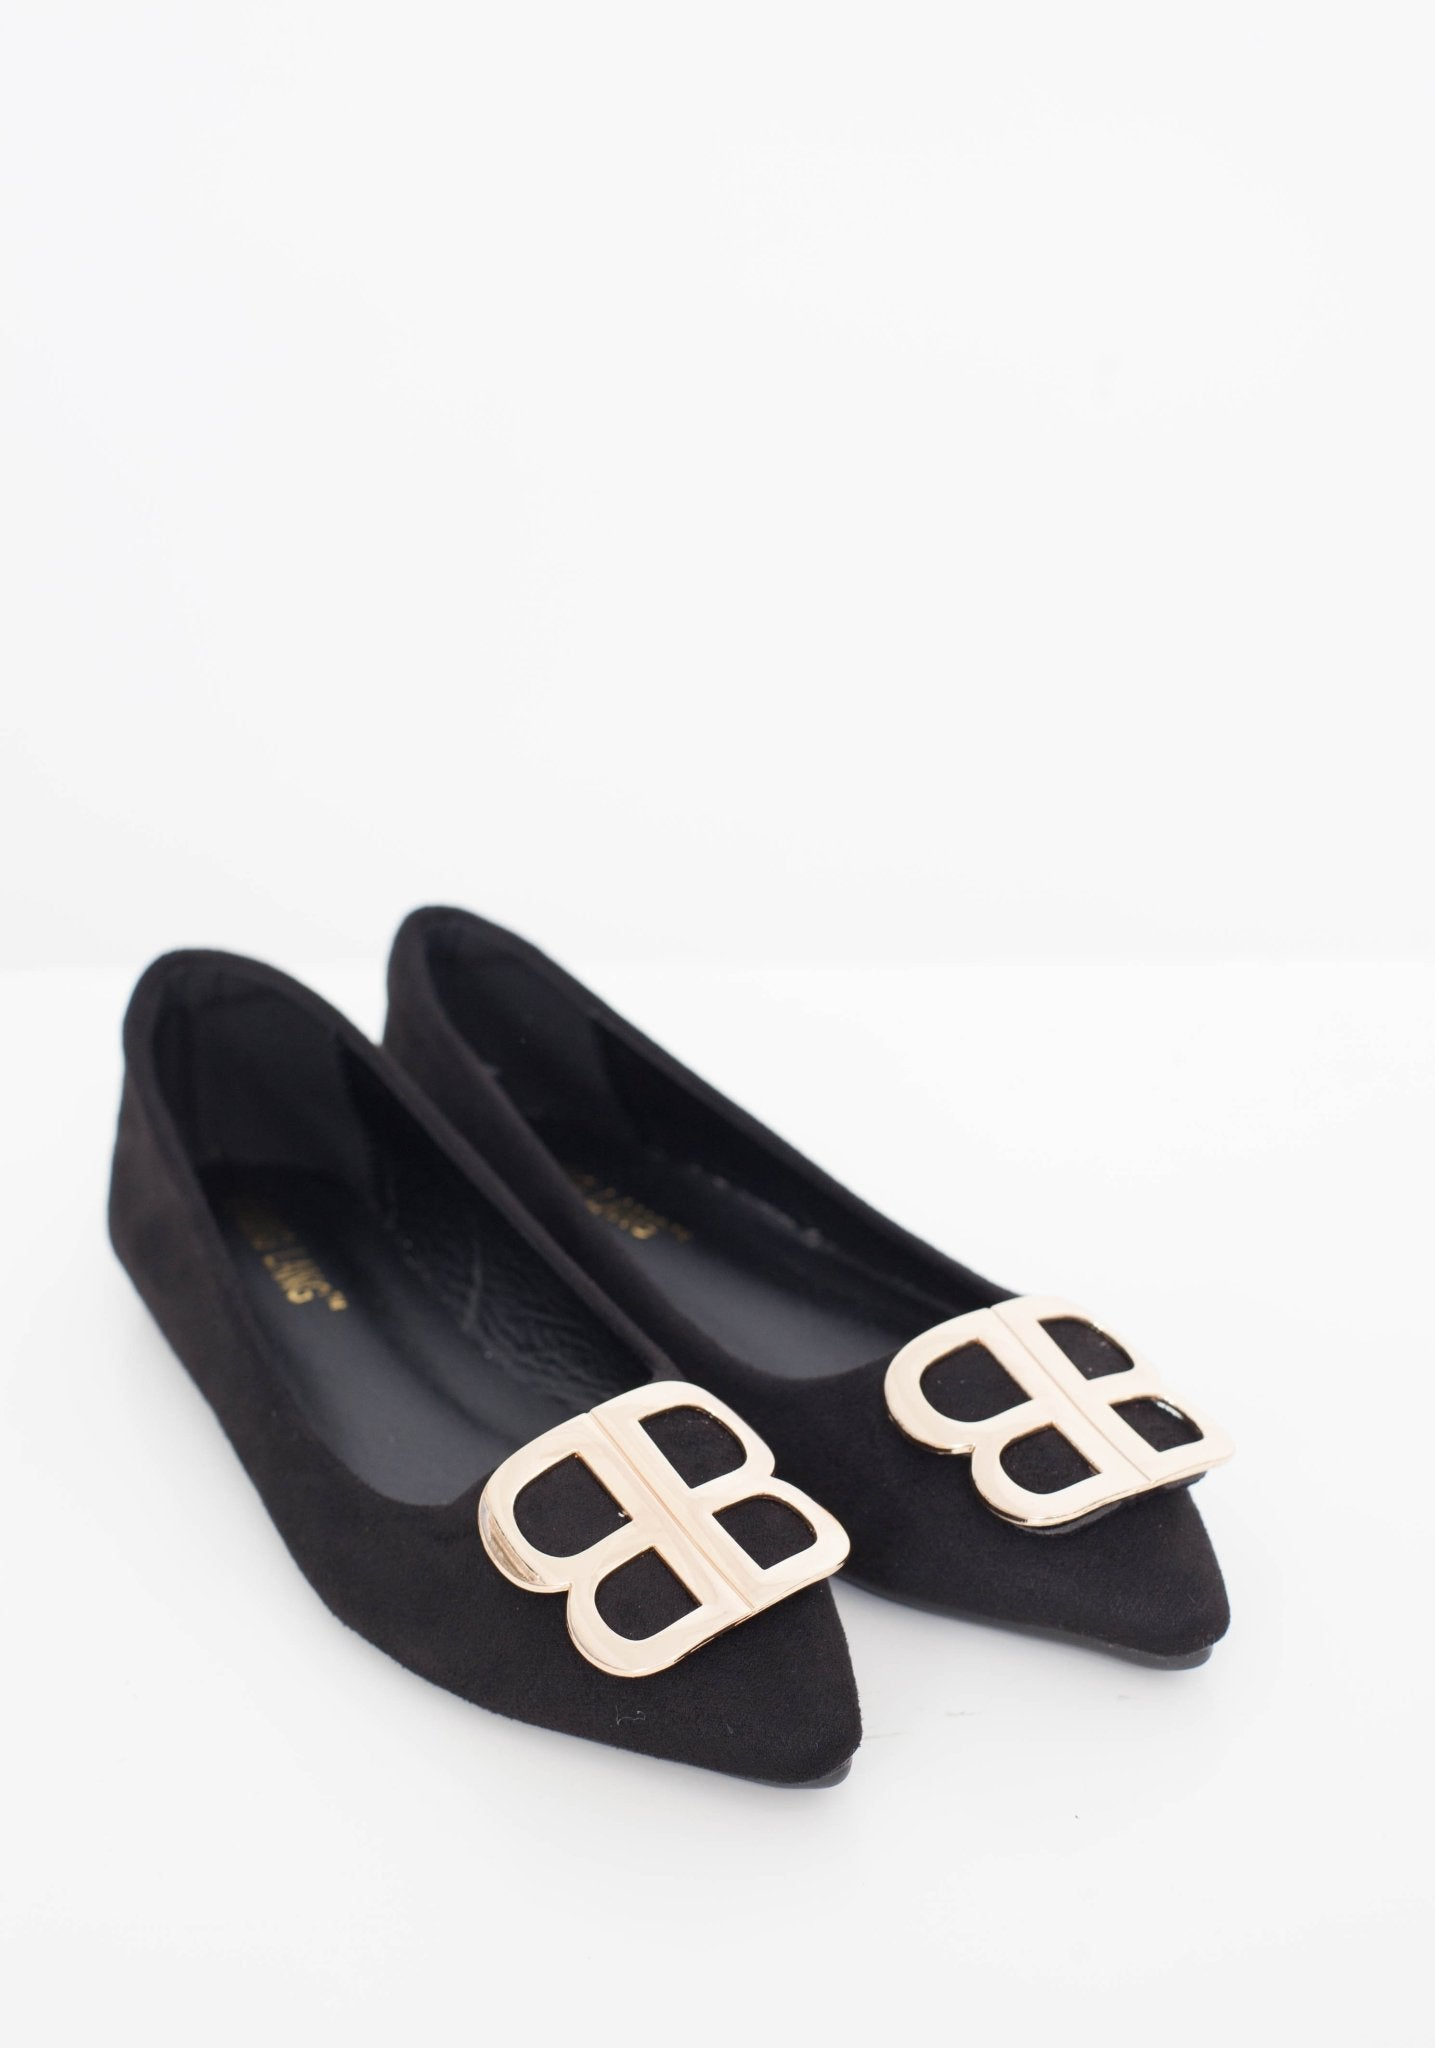 Blair Pointed Flats With Buckle In Black - The Walk in Wardrobe